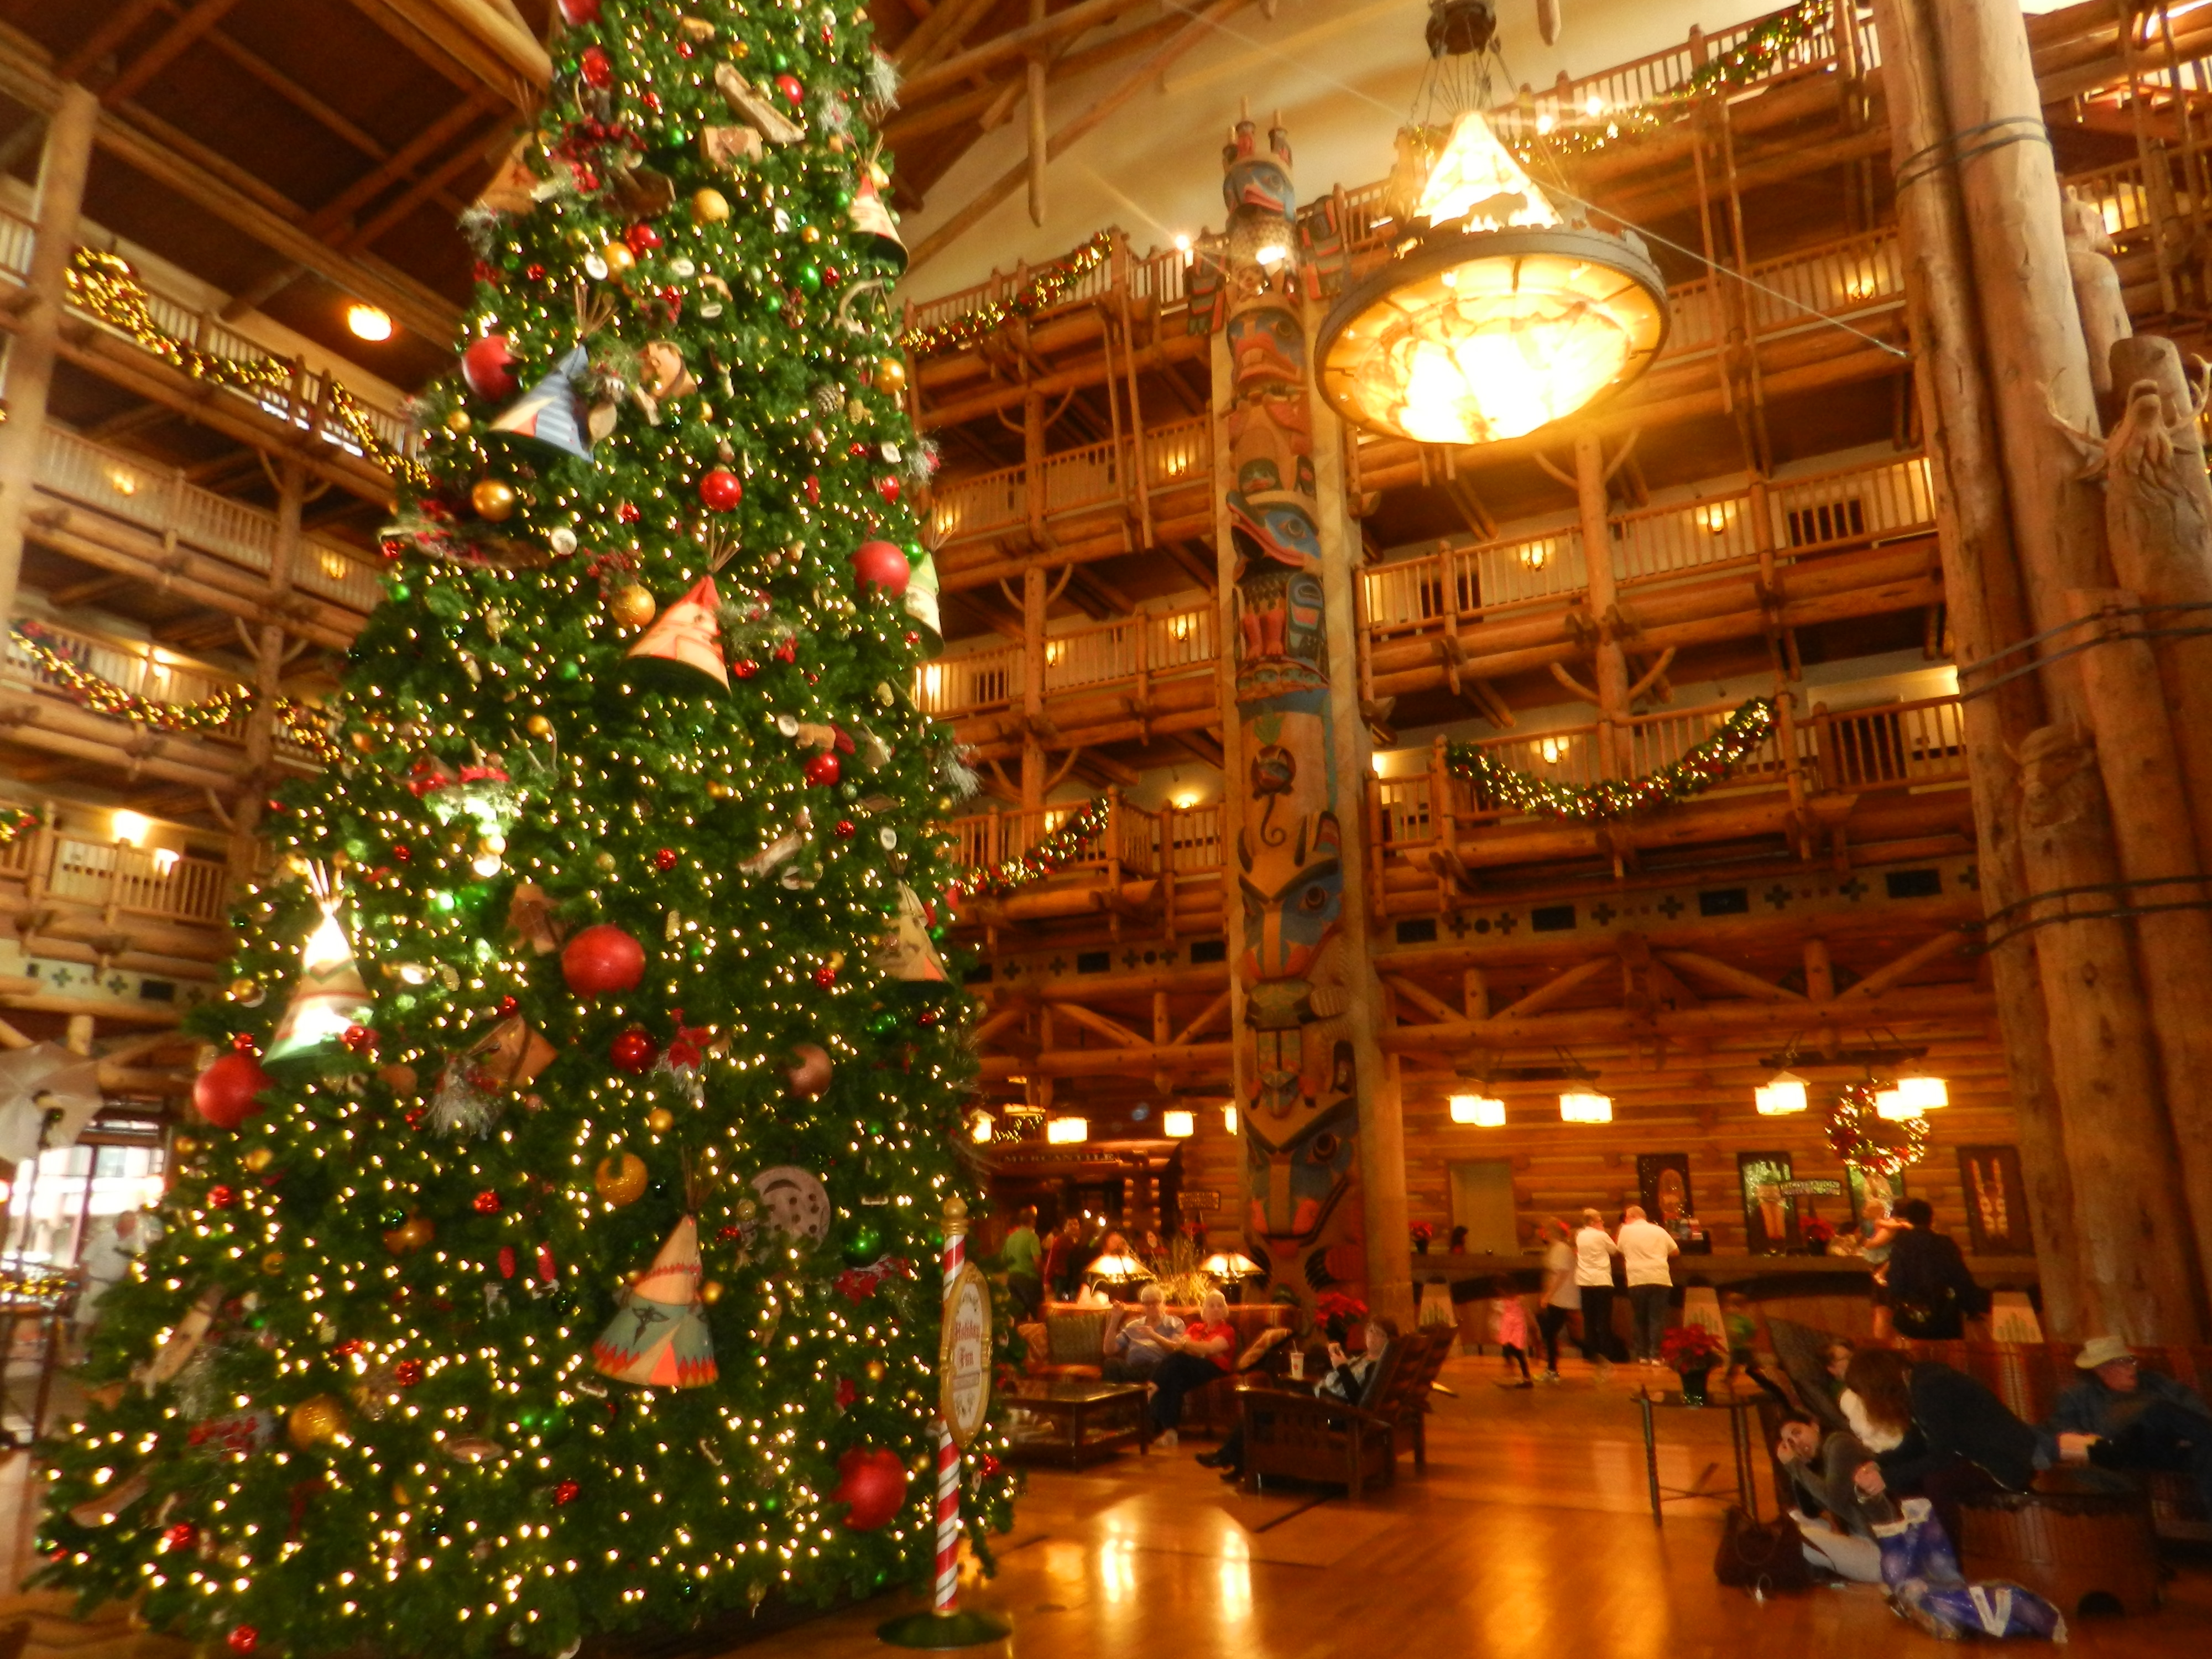 christmas at ft wilderness lodge - Disney World Christmas Decorations 2017